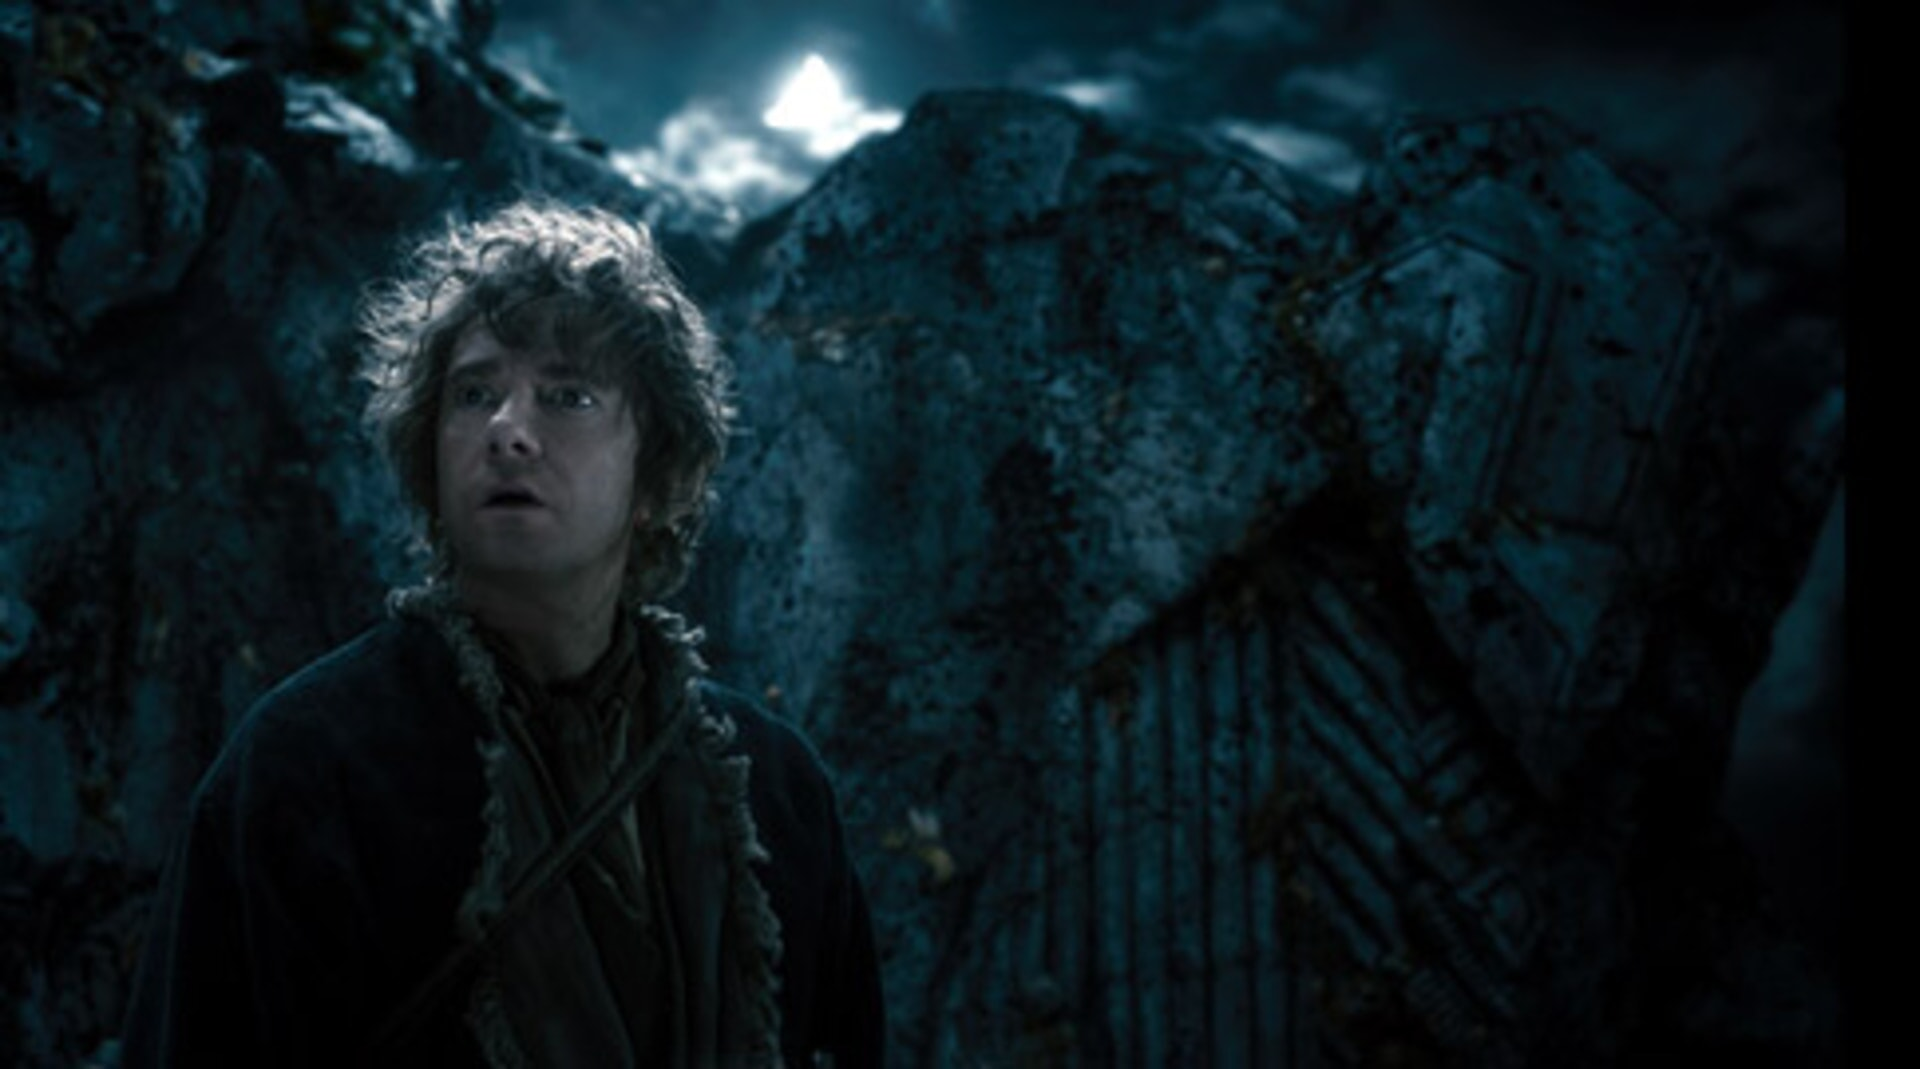 The Hobbit: The Desolation of Smaug - Image 27